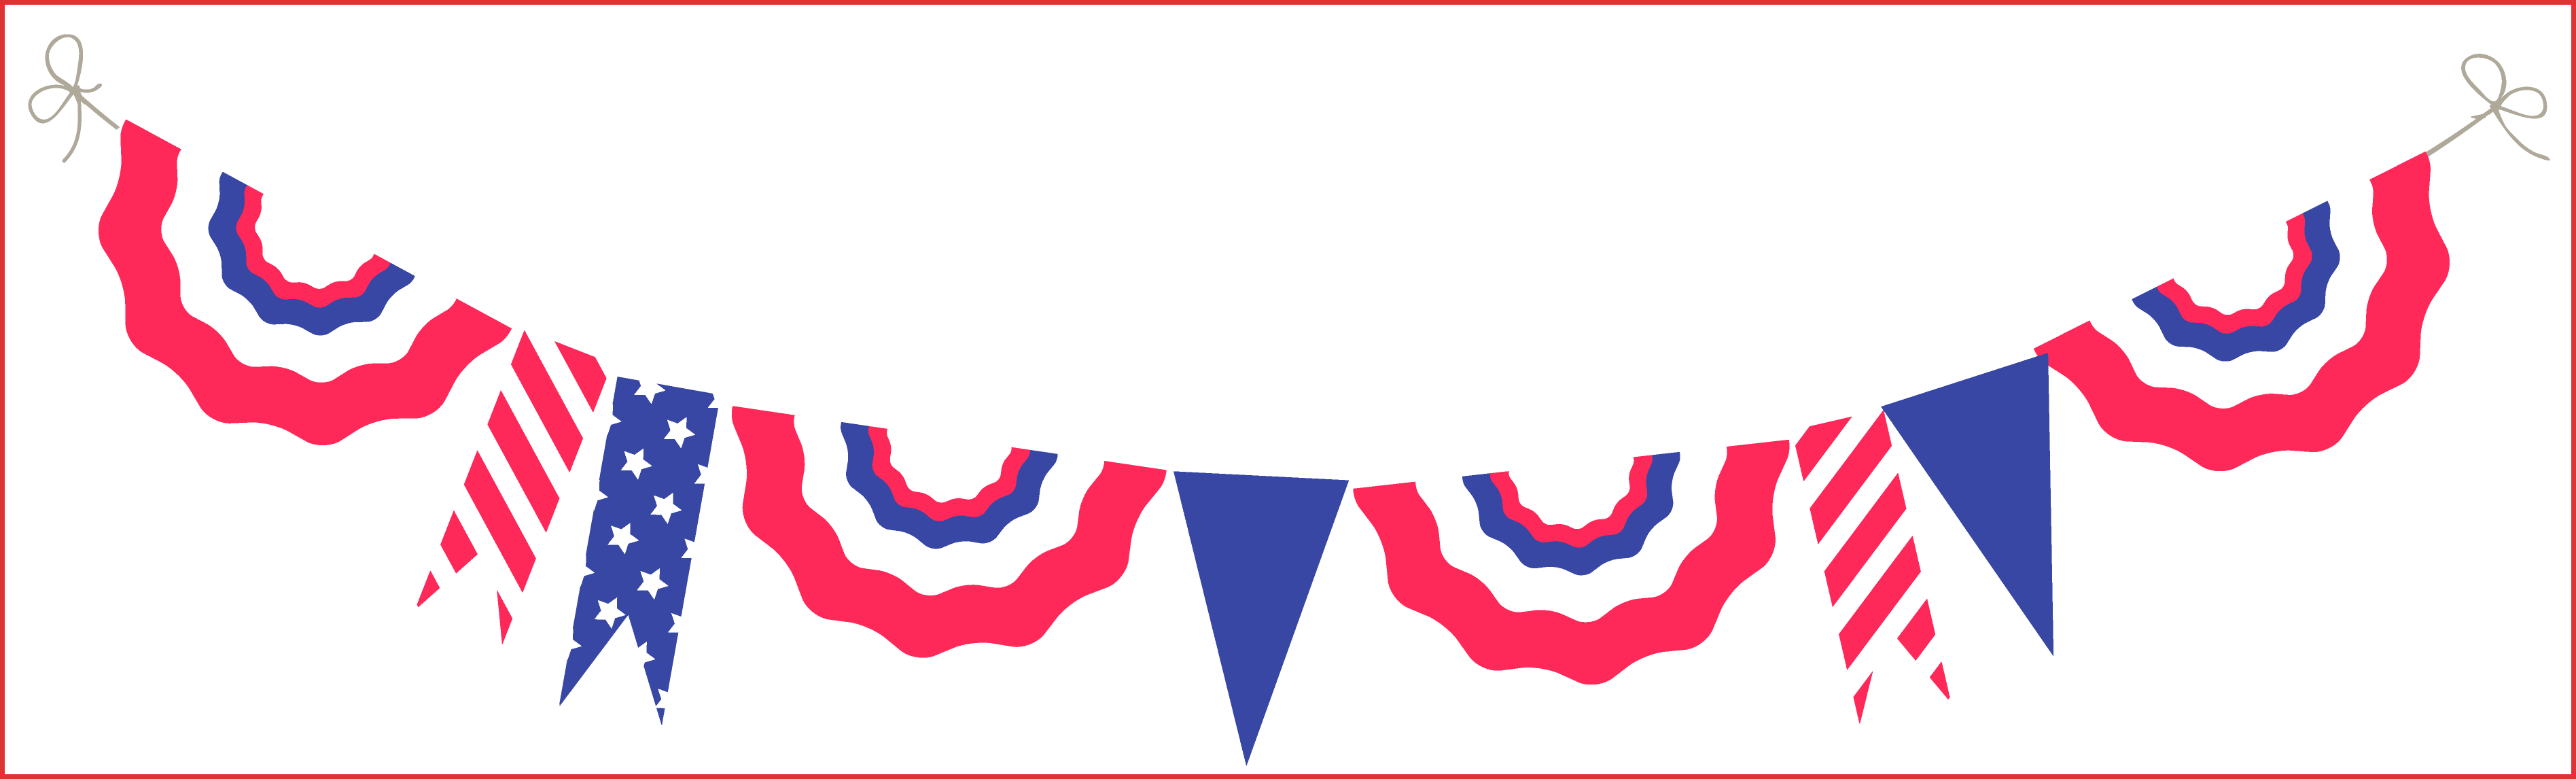 Kids clipart 4th july. Beautiful th cobble usa